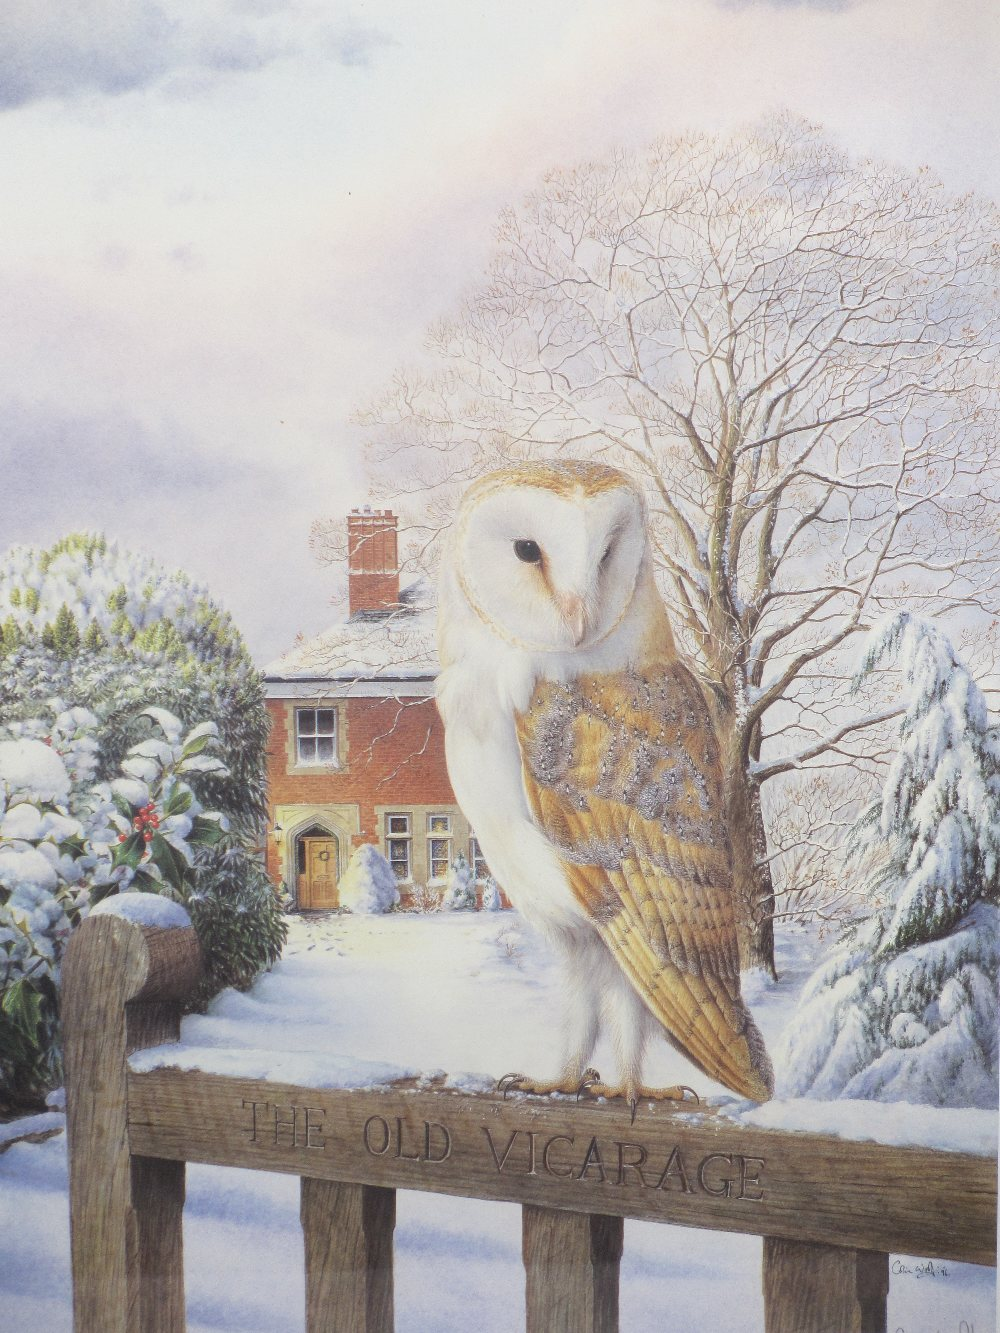 COLIN WOOLF limited edition and other framed prints (3) - a barn owl standing on the gate of the Old - Image 2 of 6